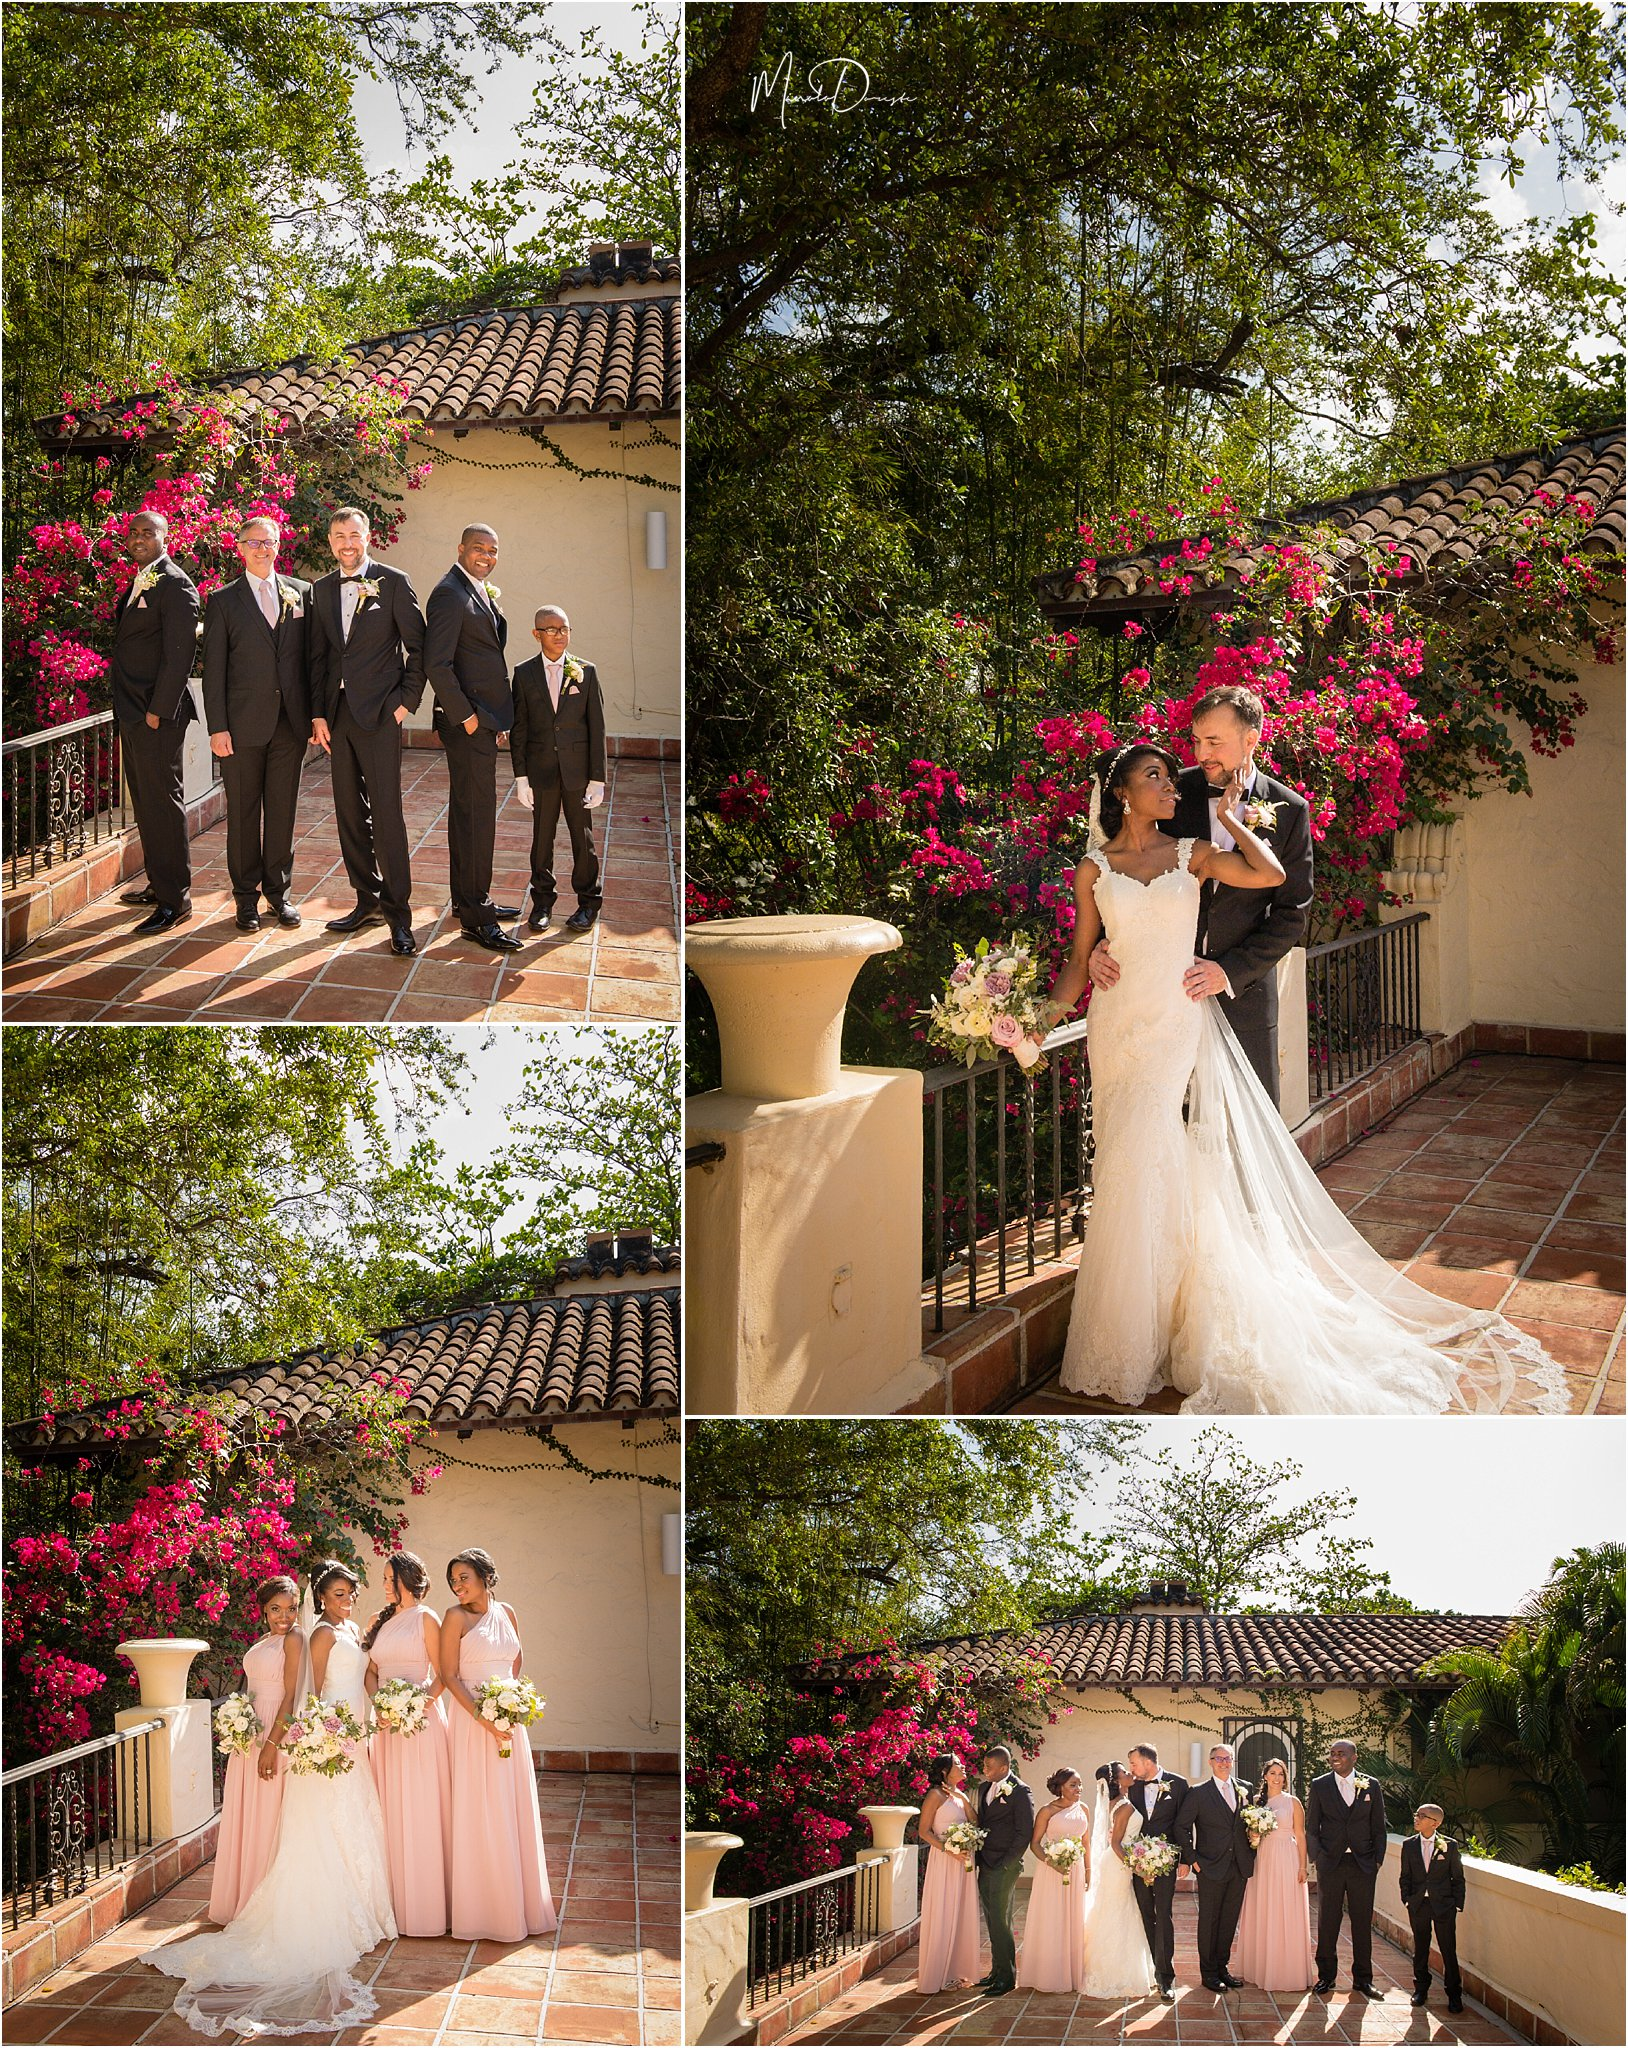 0640_ManoloDoreste_InFocusStudios_Wedding_Family_Photography_Miami_MiamiPhotographer.jpg